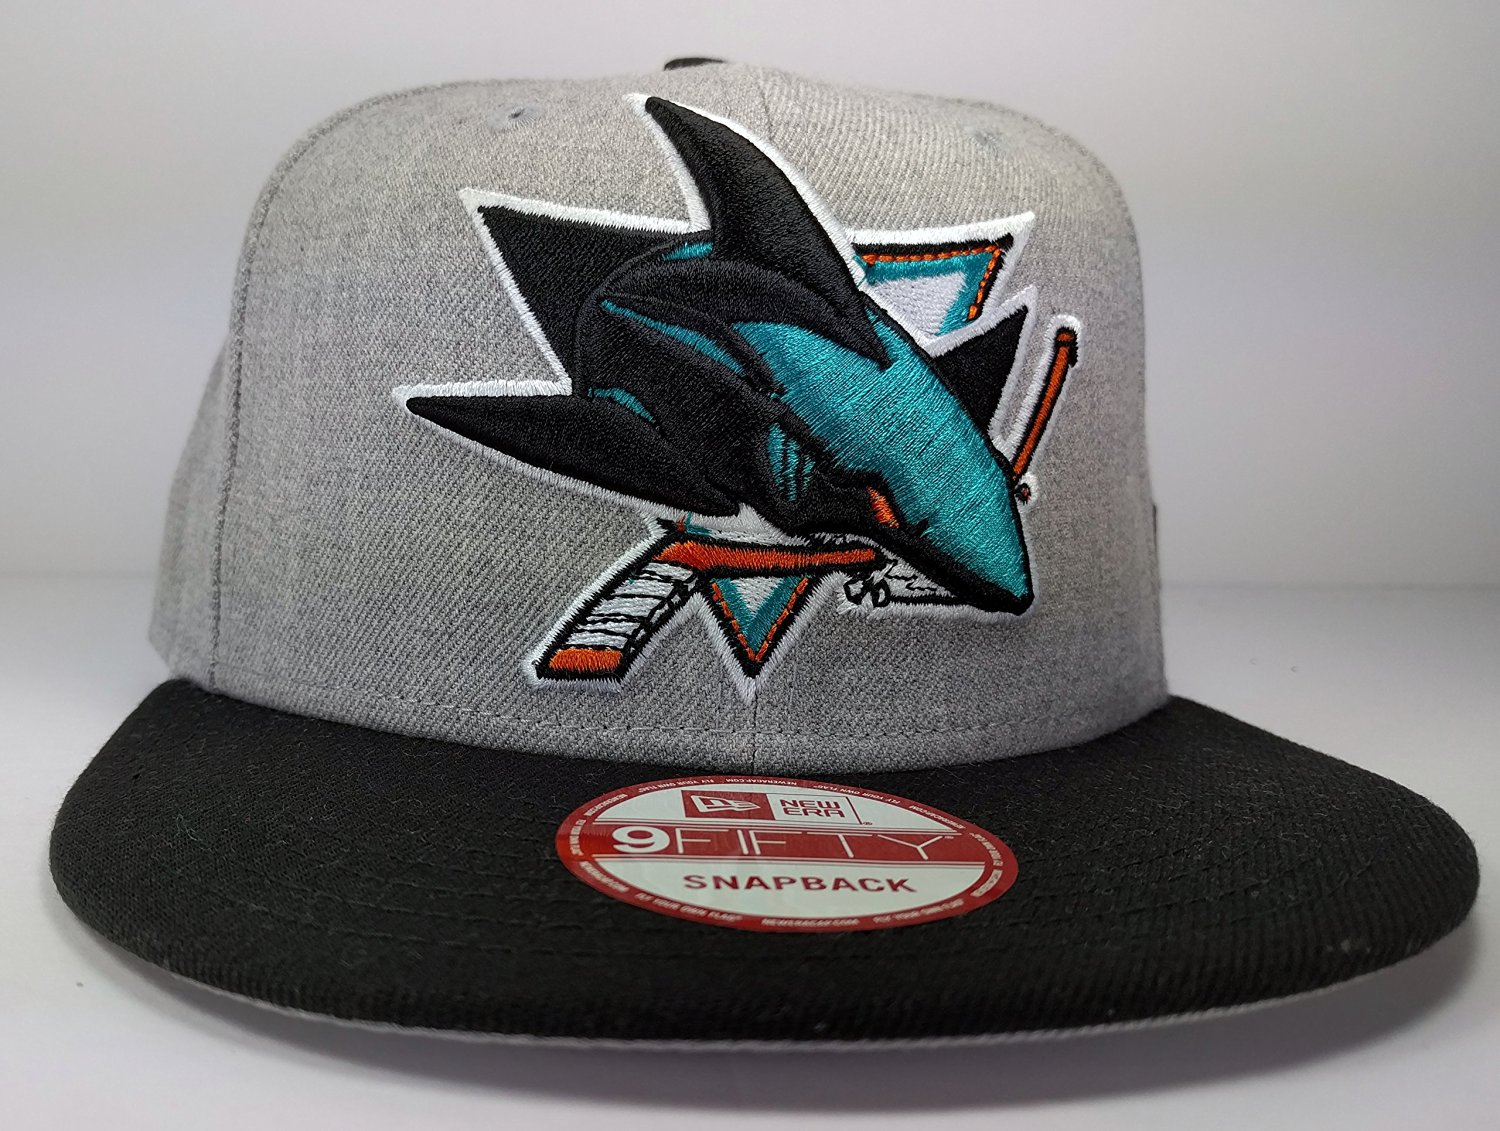 cheap for discount ff8f8 01ba8 Get Quotations · San Jose Sharks New Era Speed Up Snapback Cap Hat Grey  Black